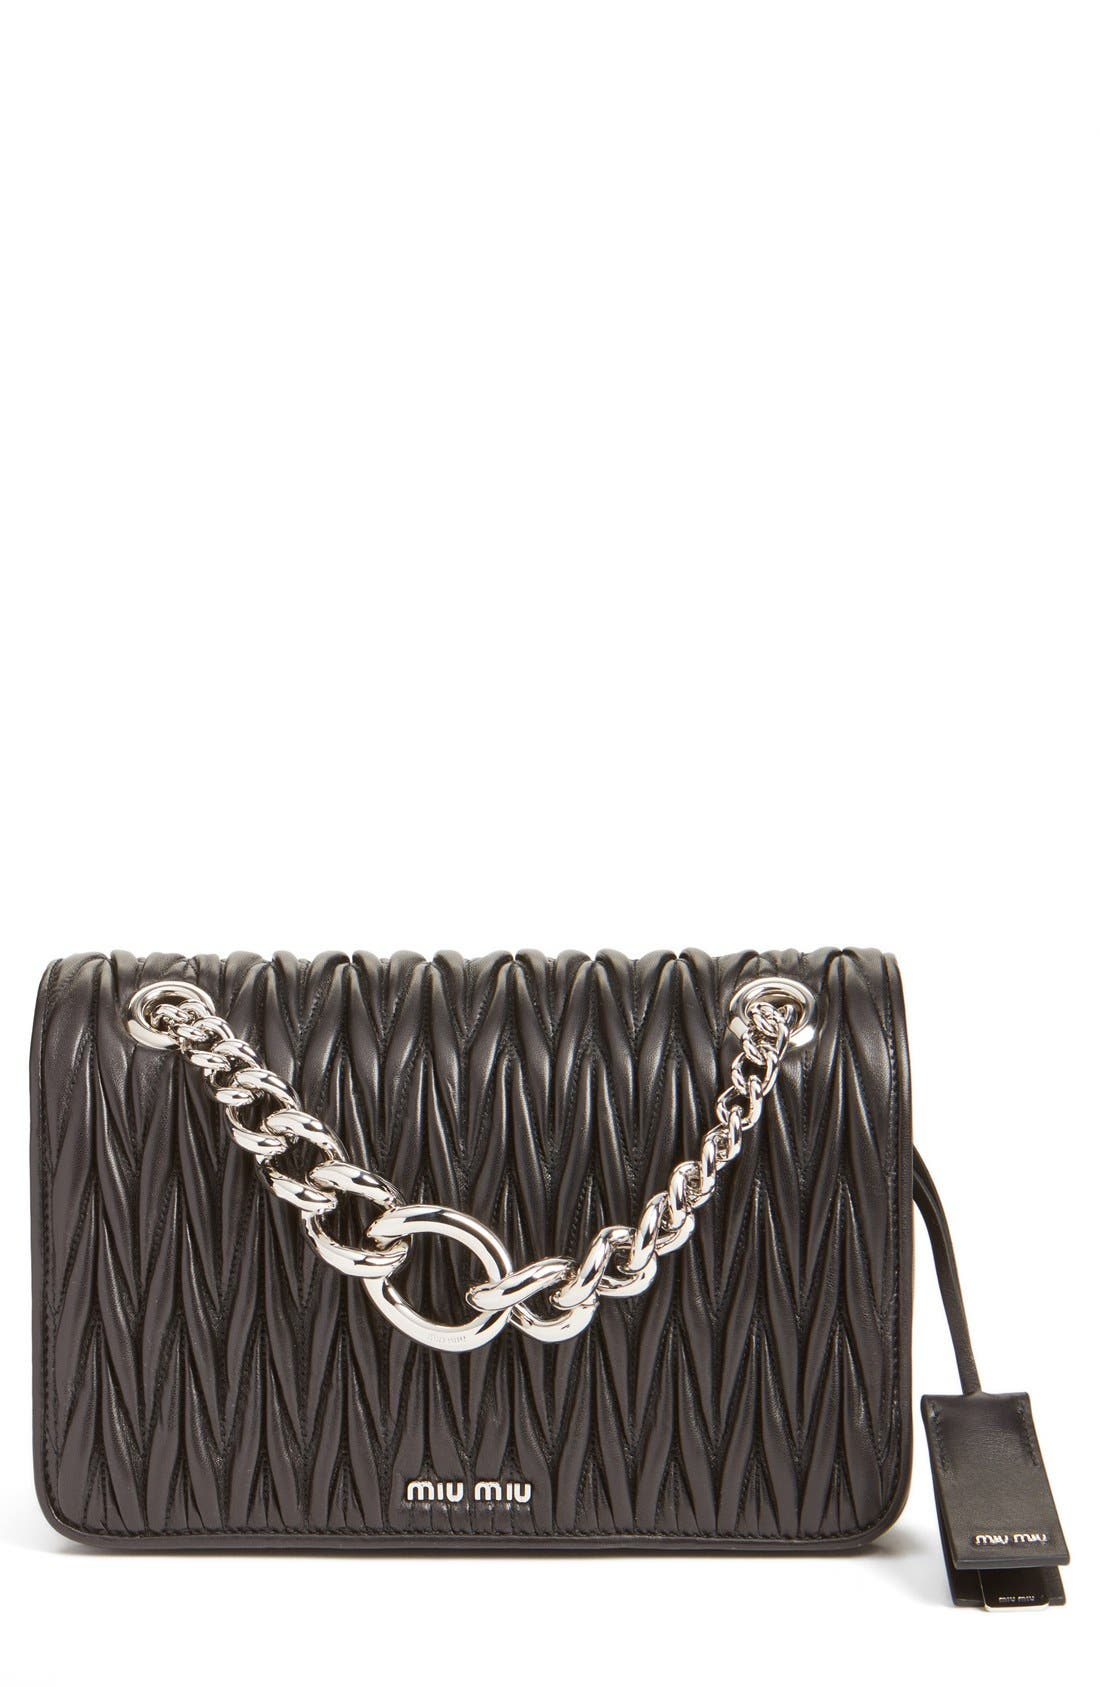 Miu Miu 'Club' Matelassé Leather Shoulder Bag